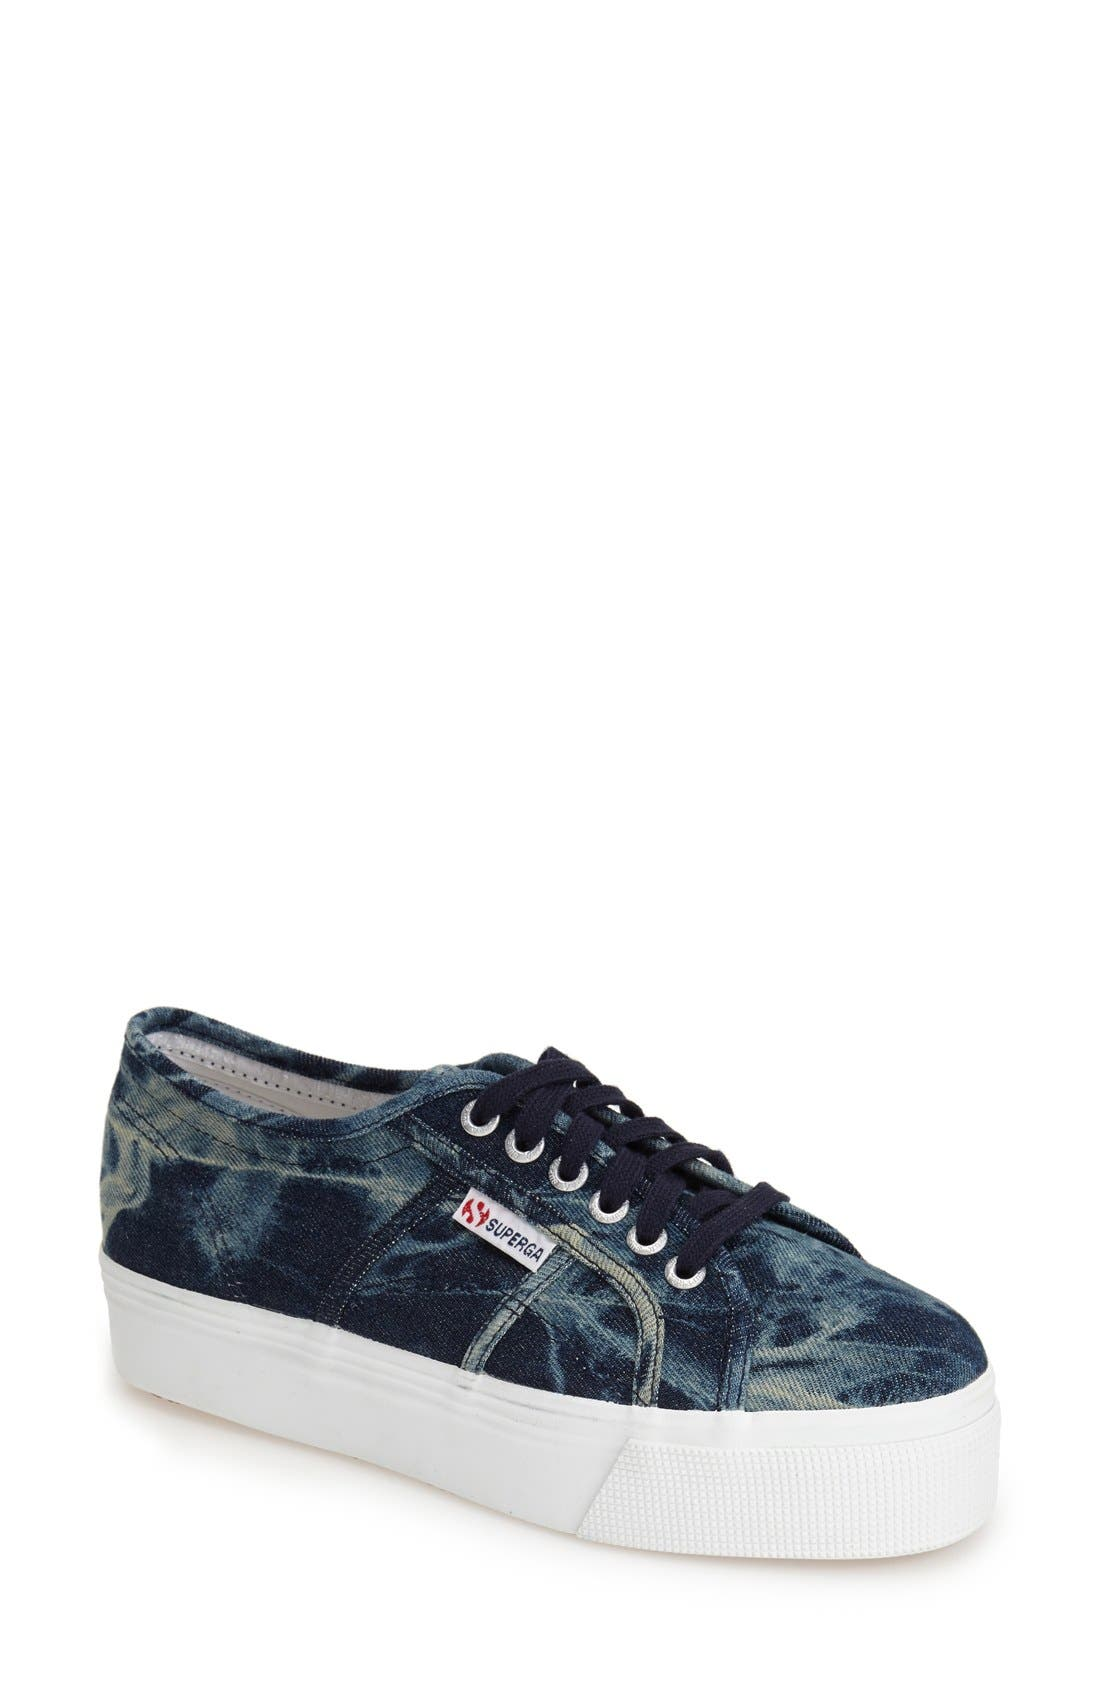 Alternate Image 1 Selected - Superga Tie Dye Platform Sneaker (Women)